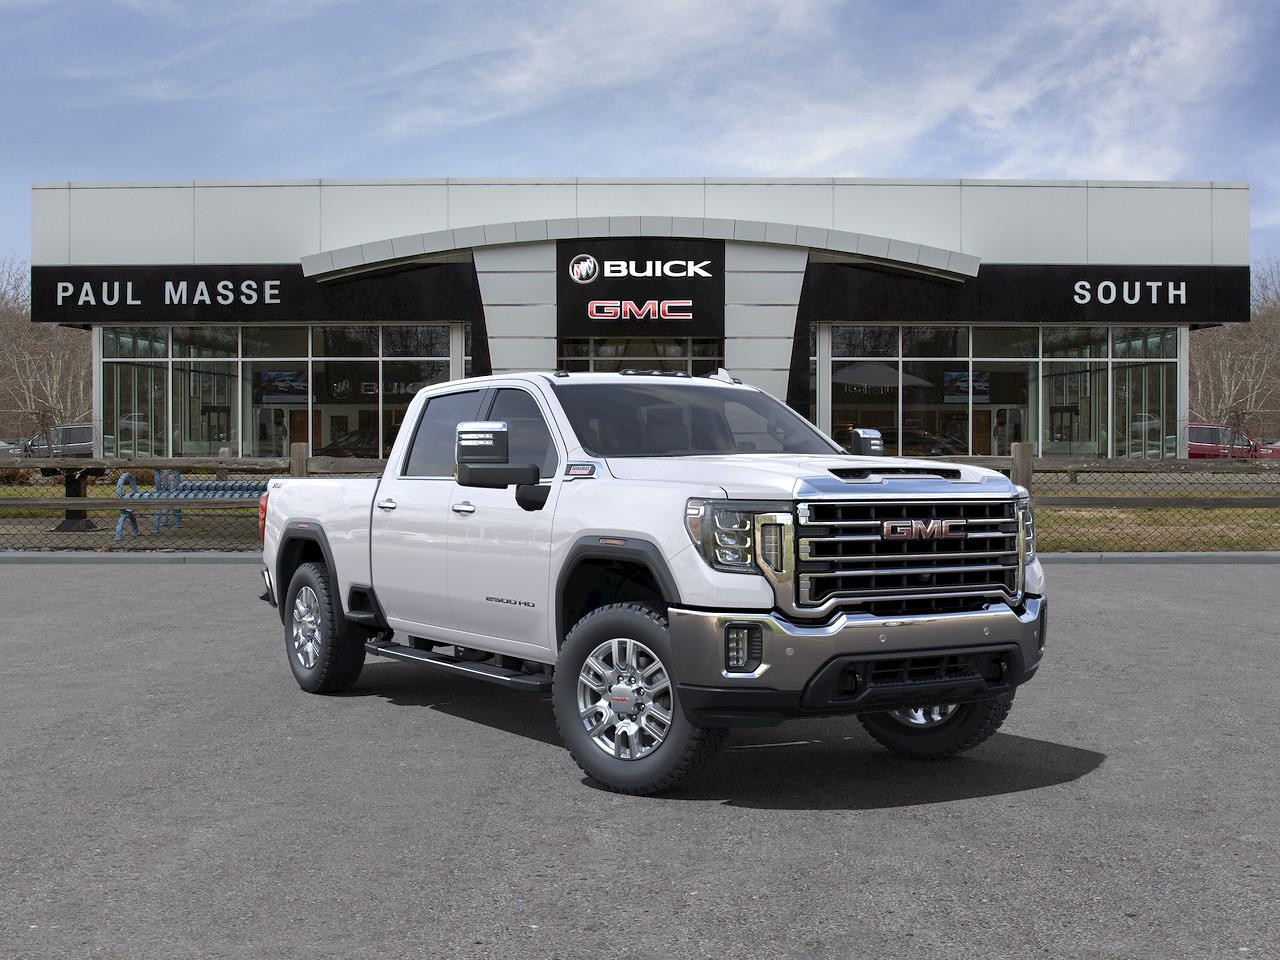 2021 GMC Sierra 2500 Crew Cab 4x4, Pickup #SR1248 - photo 1